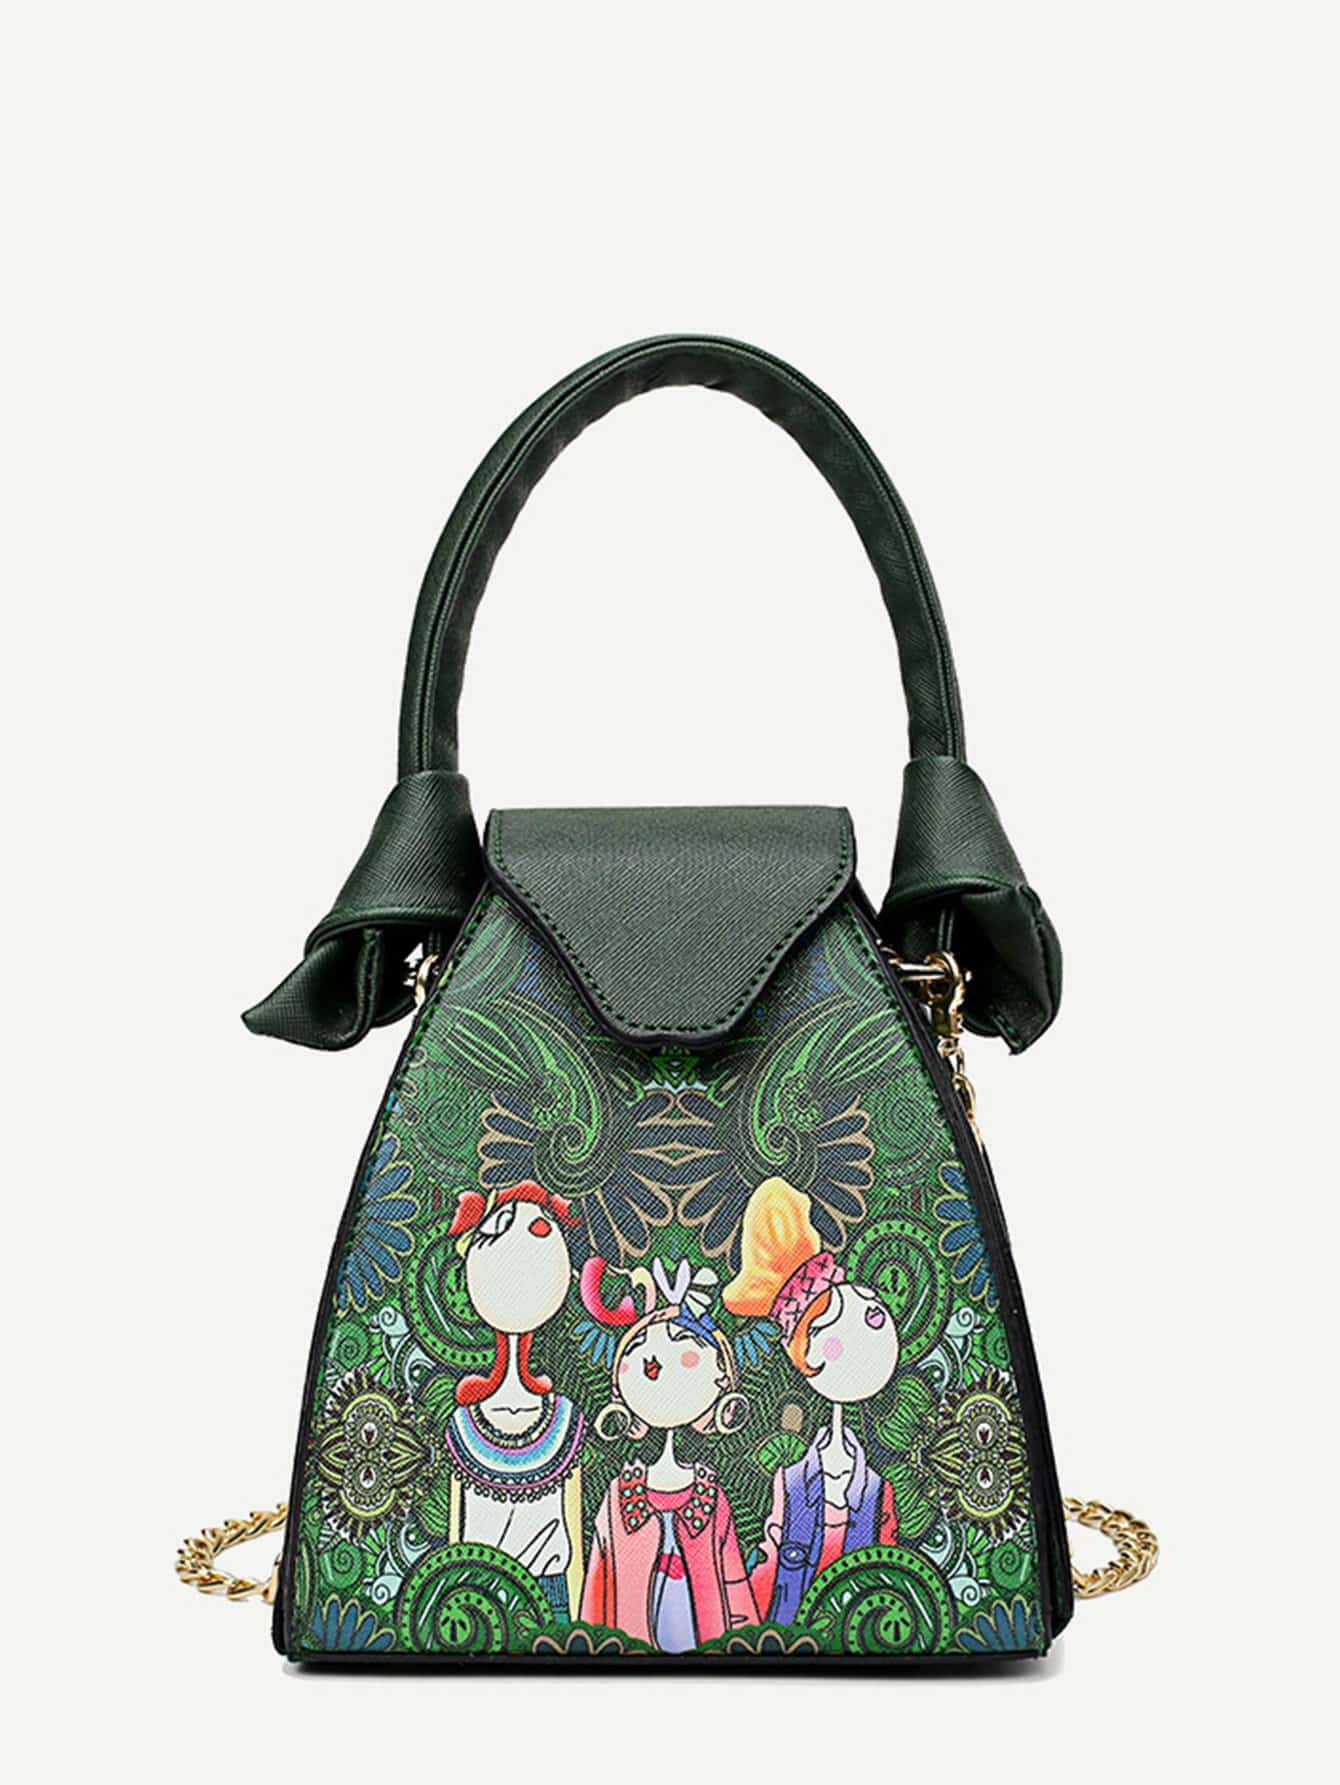 Figures Print Tote Bag With Chain Strap new bag strap chain wallet handle purse acrylic resin strap chain strap replaced bag strap bag spare parts